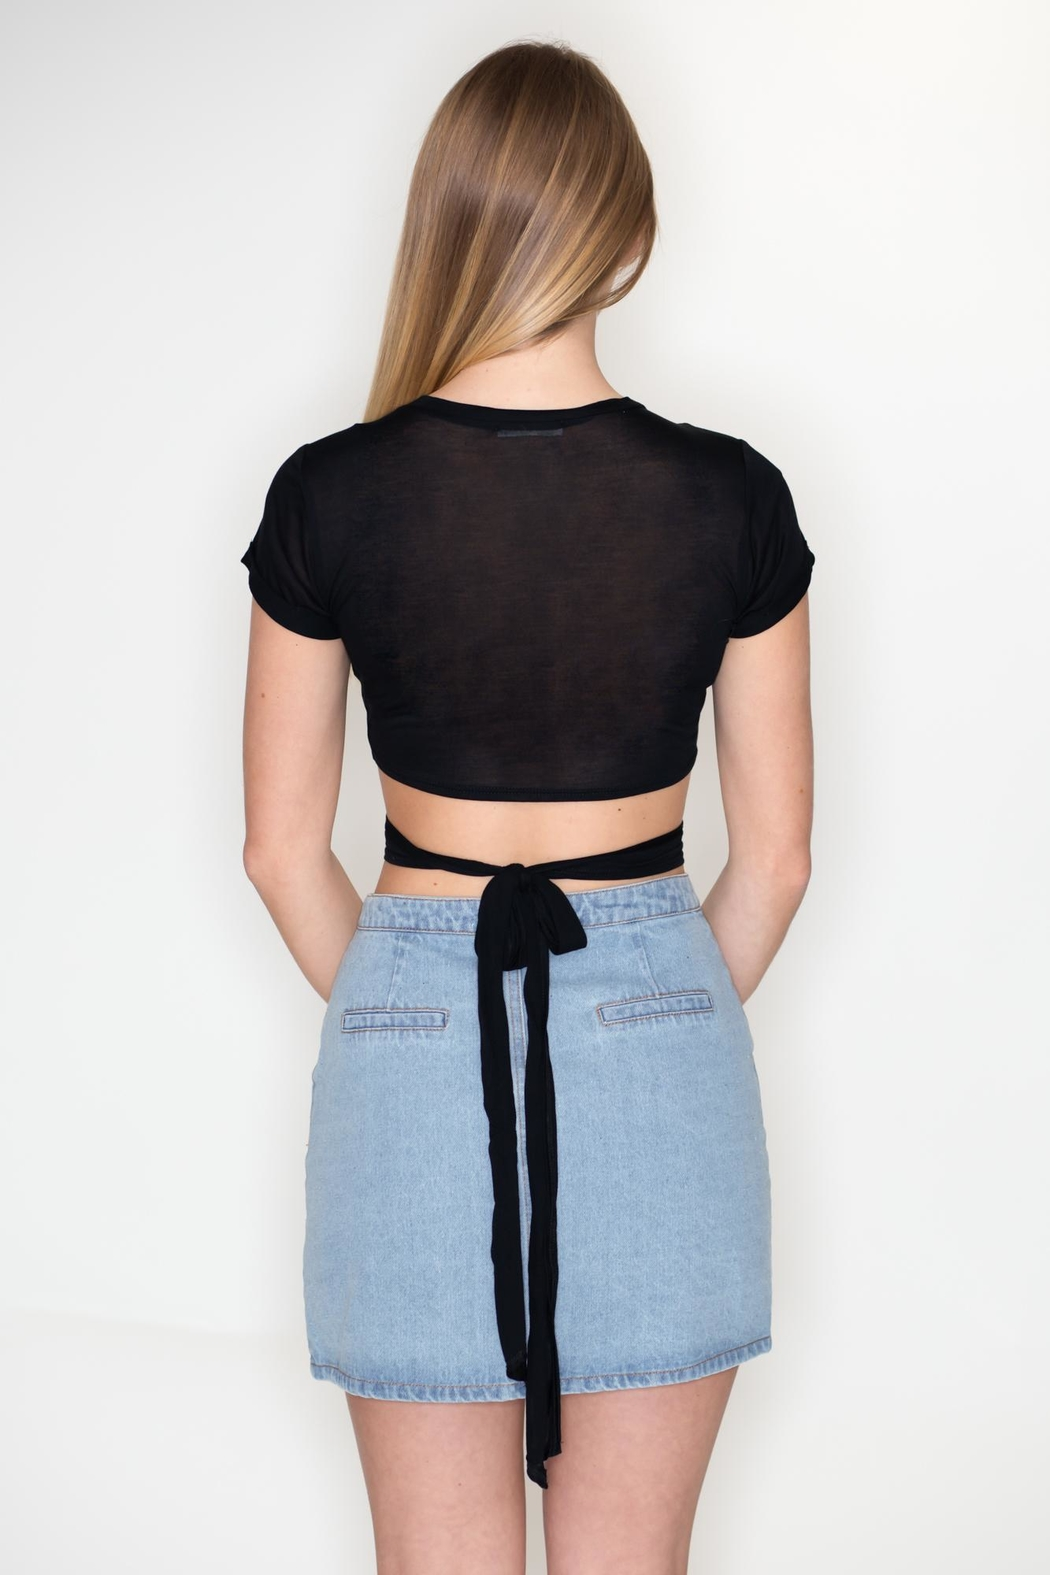 Emory Park Wrap Tie Top - Side Cropped Image